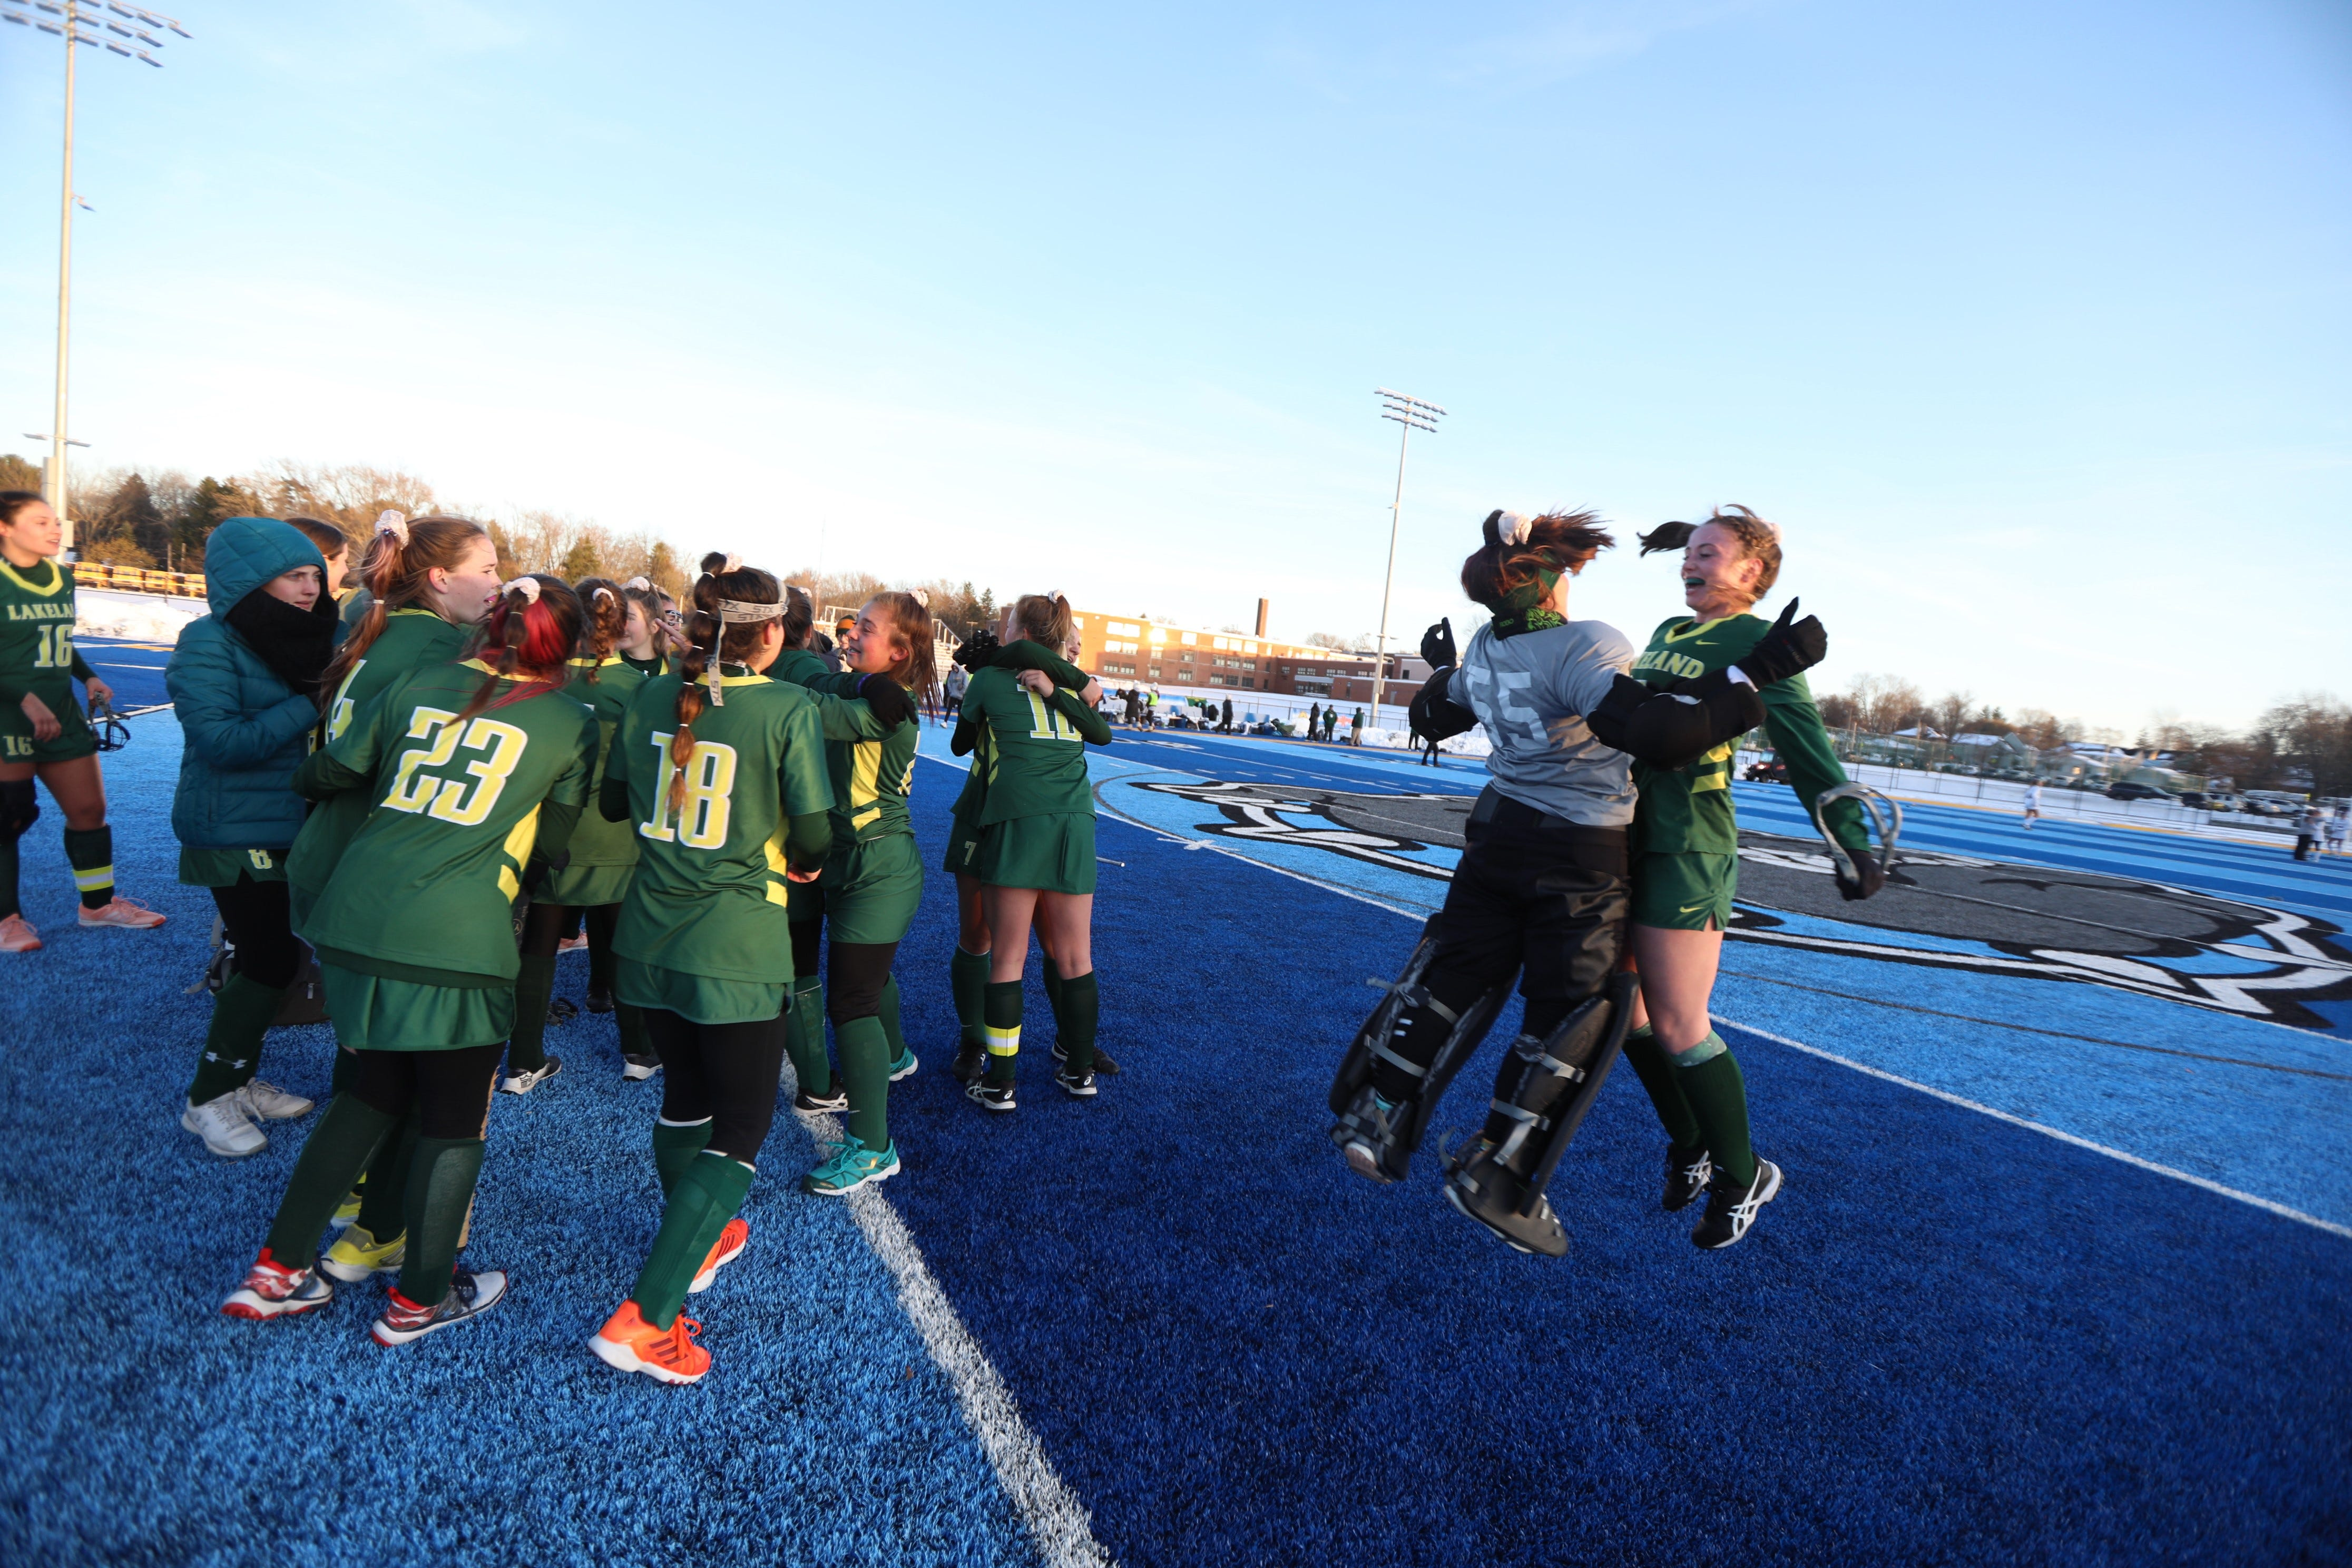 Class B field hockey: Lakeland wins 10th state title in 11 years - Rochester Democrat and Chronicle